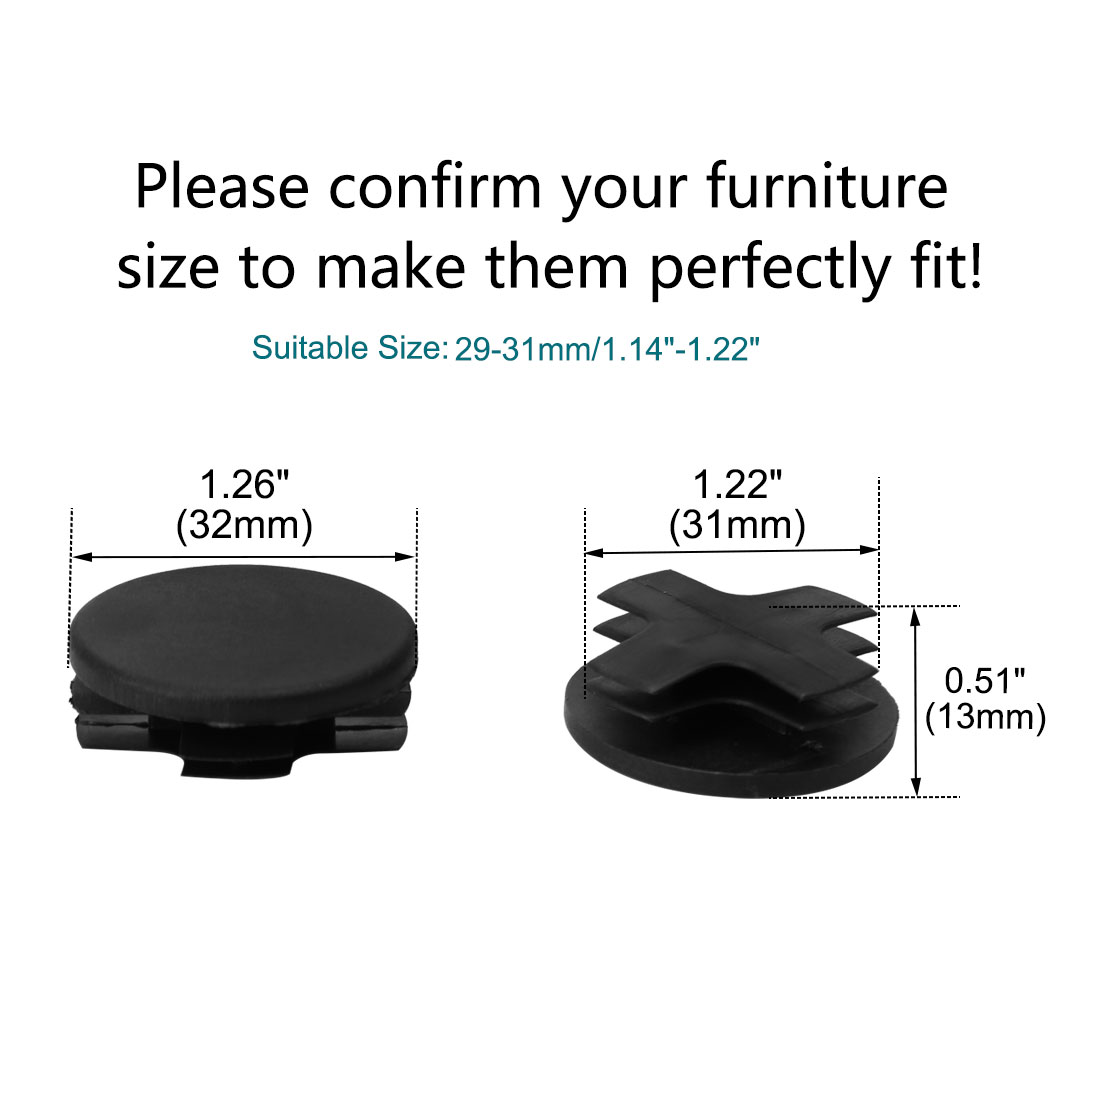 """13pcs 1 1/4"""" Dia 32mm OD Plastic Round Tube Insert Rib Pipe Cover Cap Black Floor Furniture Feet Protector, Fit for 1.14 - image 1 of 7"""